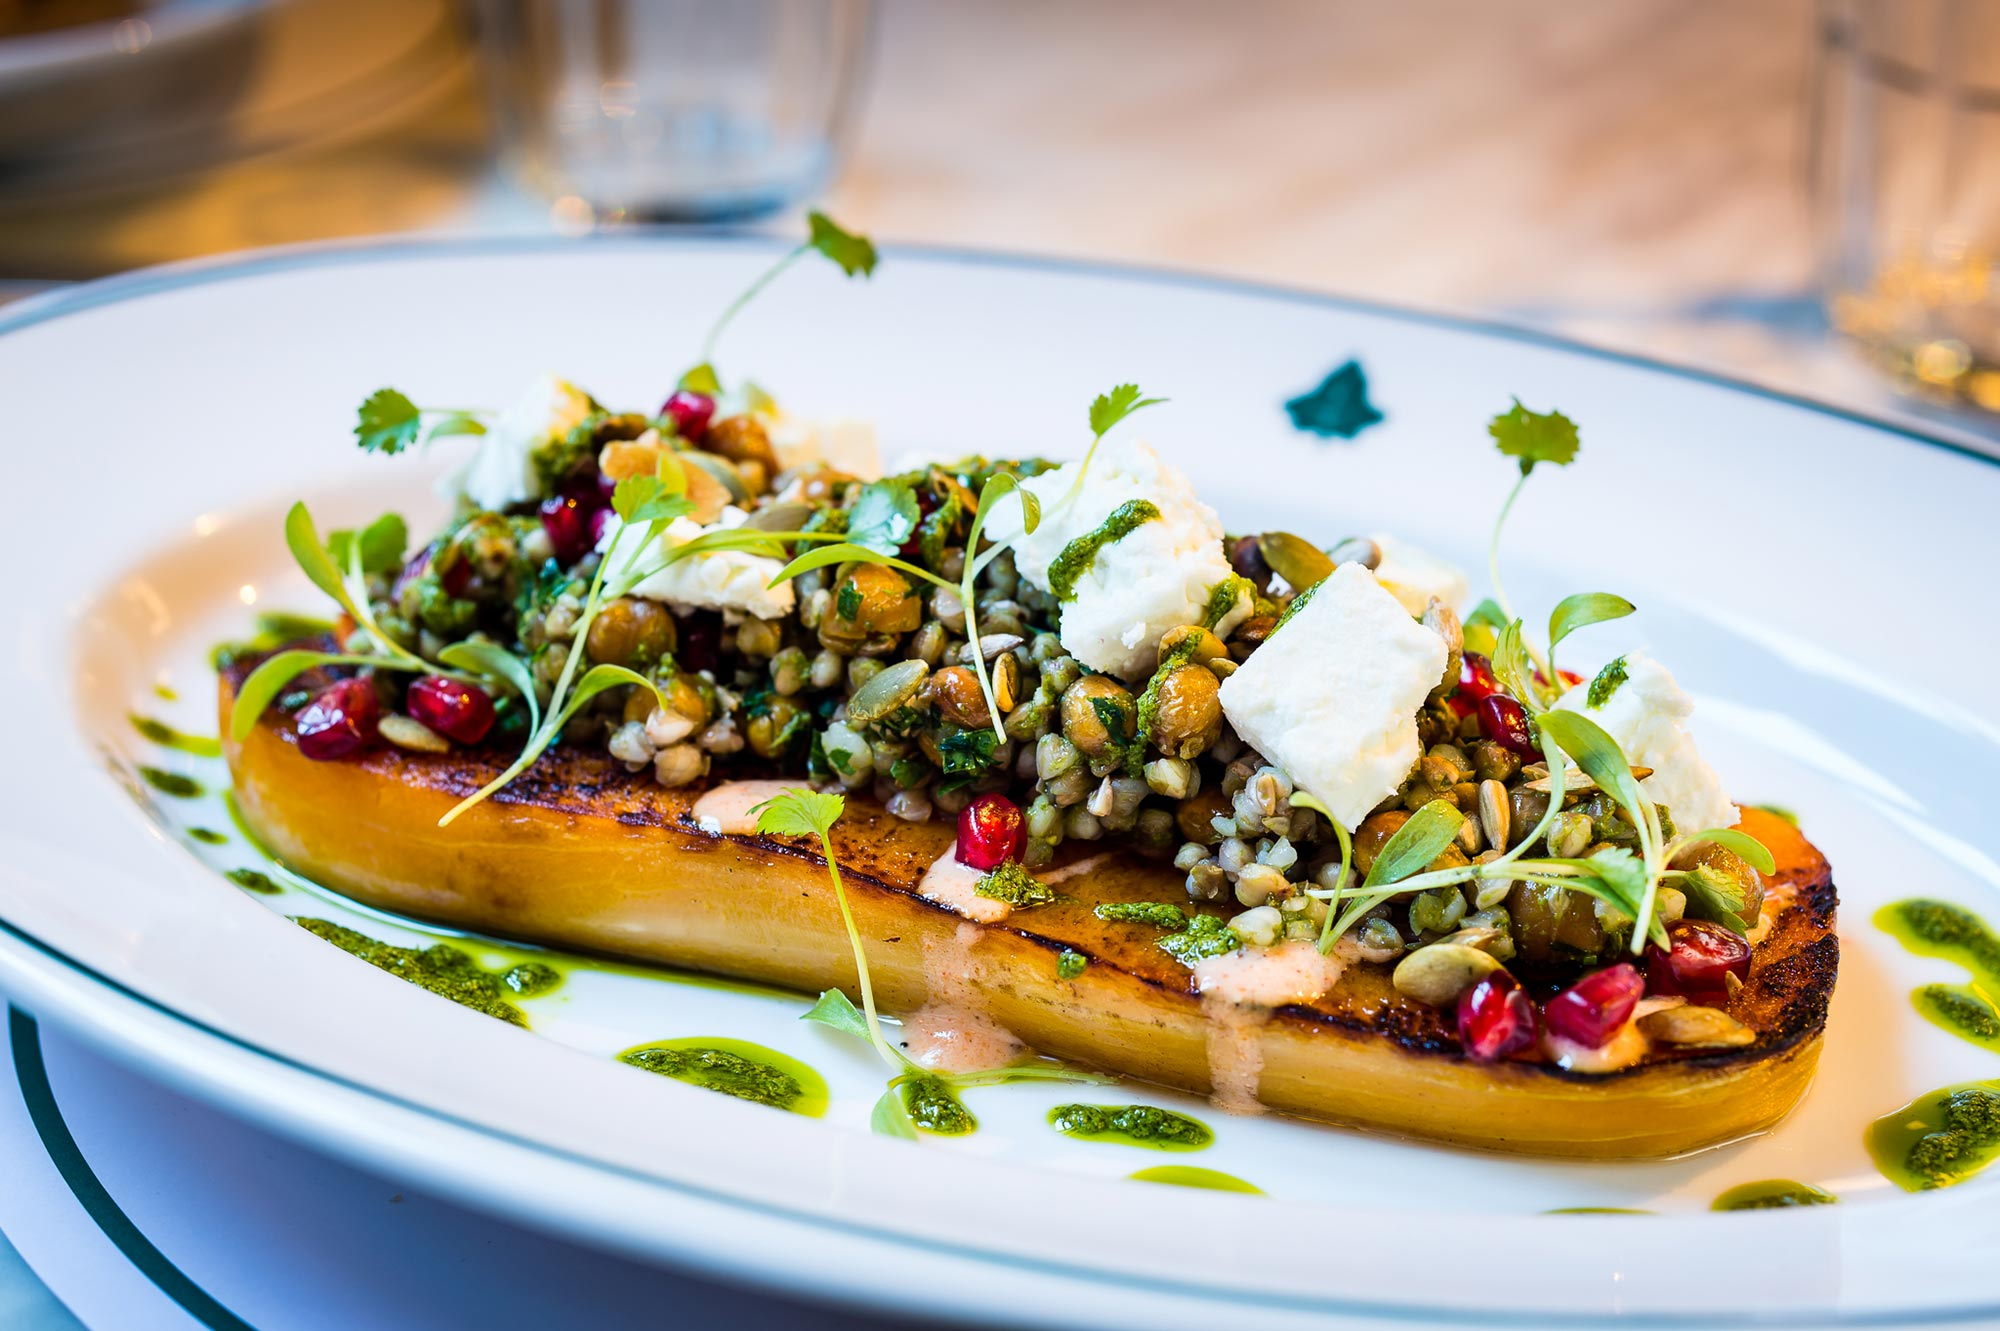 Vegetarian and Vegan Menus at The Ivy Harrogate Brasserie - Roasted Butternut Squash - The Ivy Harrogate